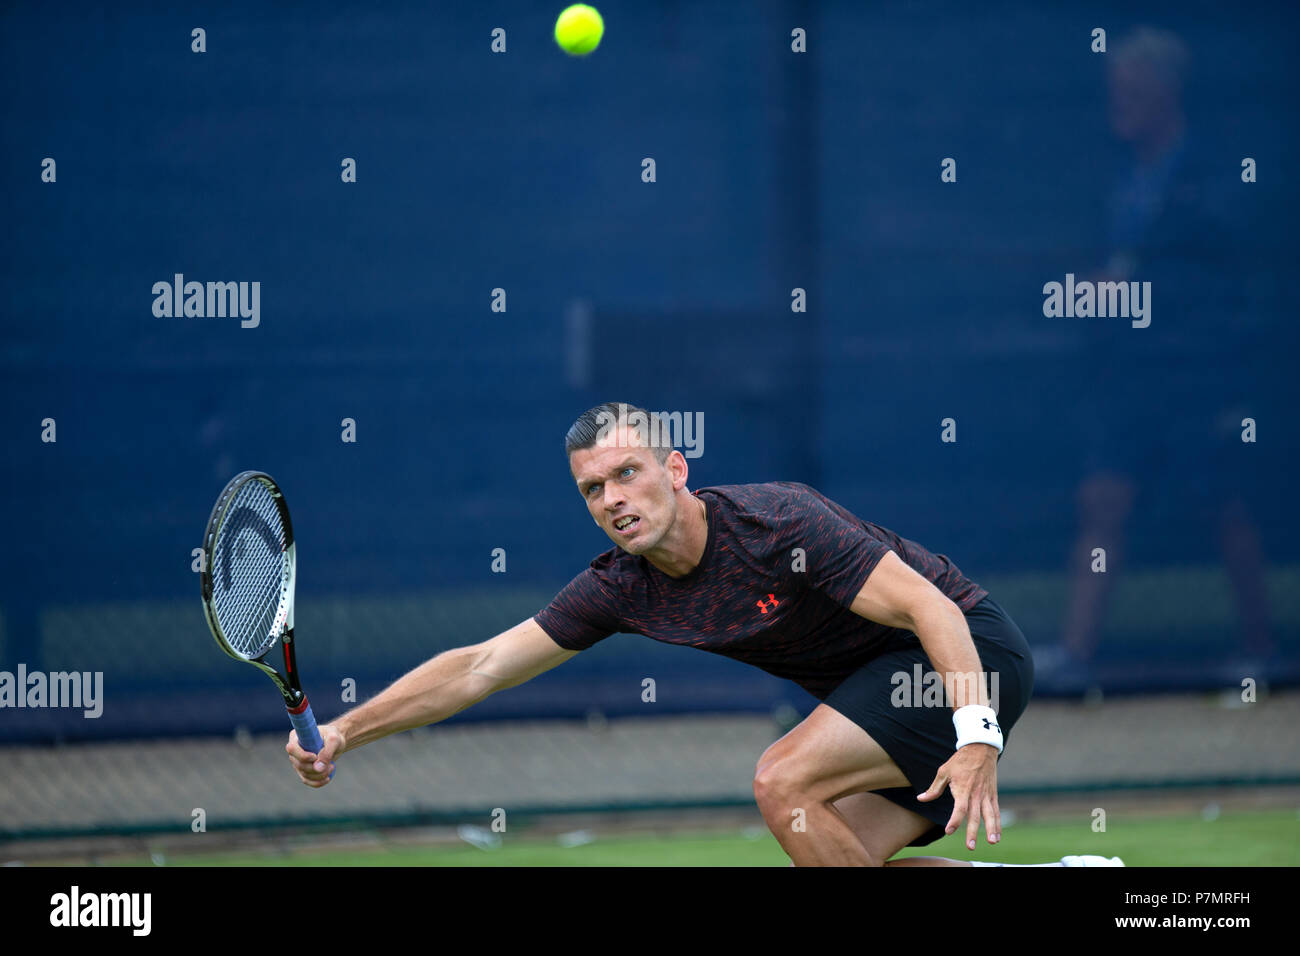 Tobias Kamke, professional tennis player, stretches for and plays a shot from the baseline during a match. - Stock Image